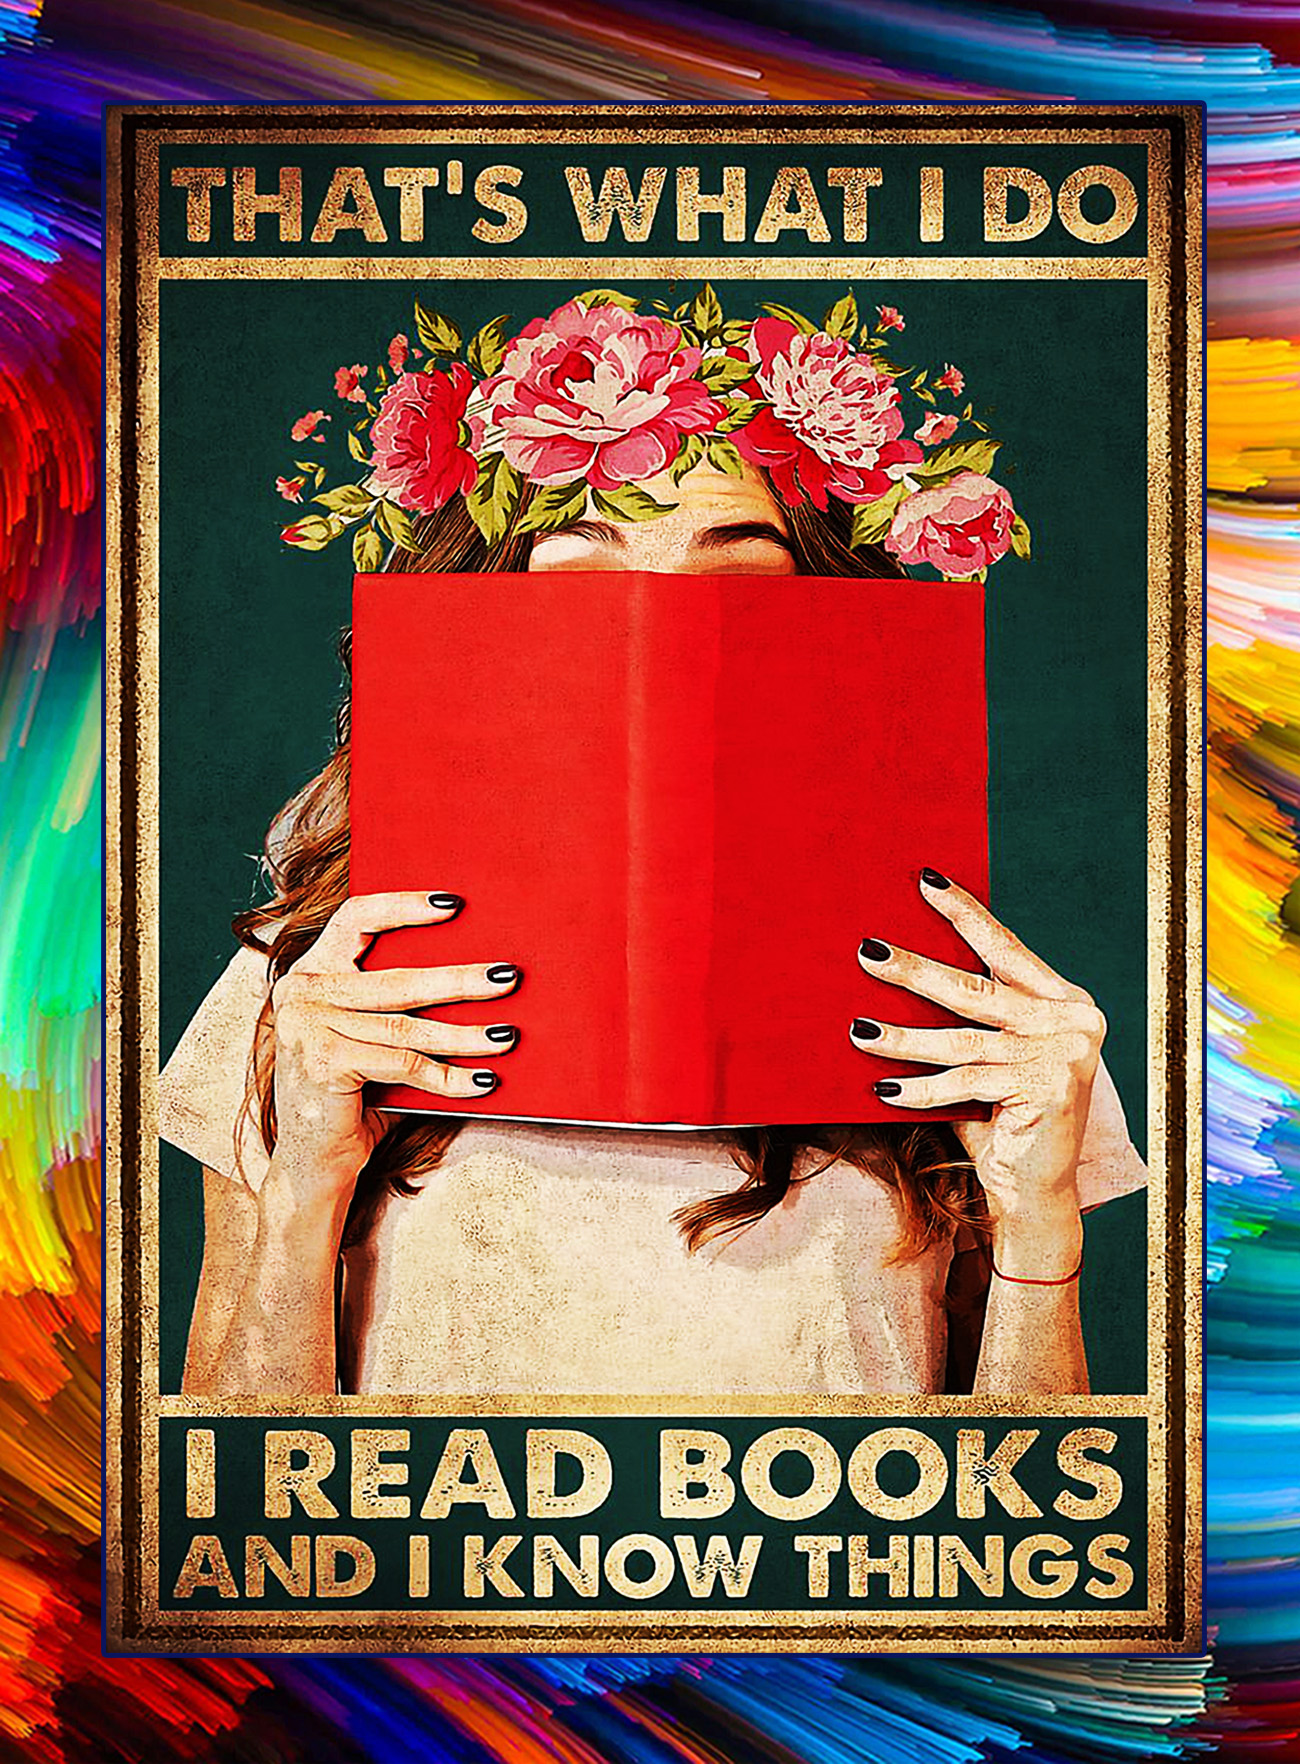 Girl that's what i do i read book and i know things poster - A1